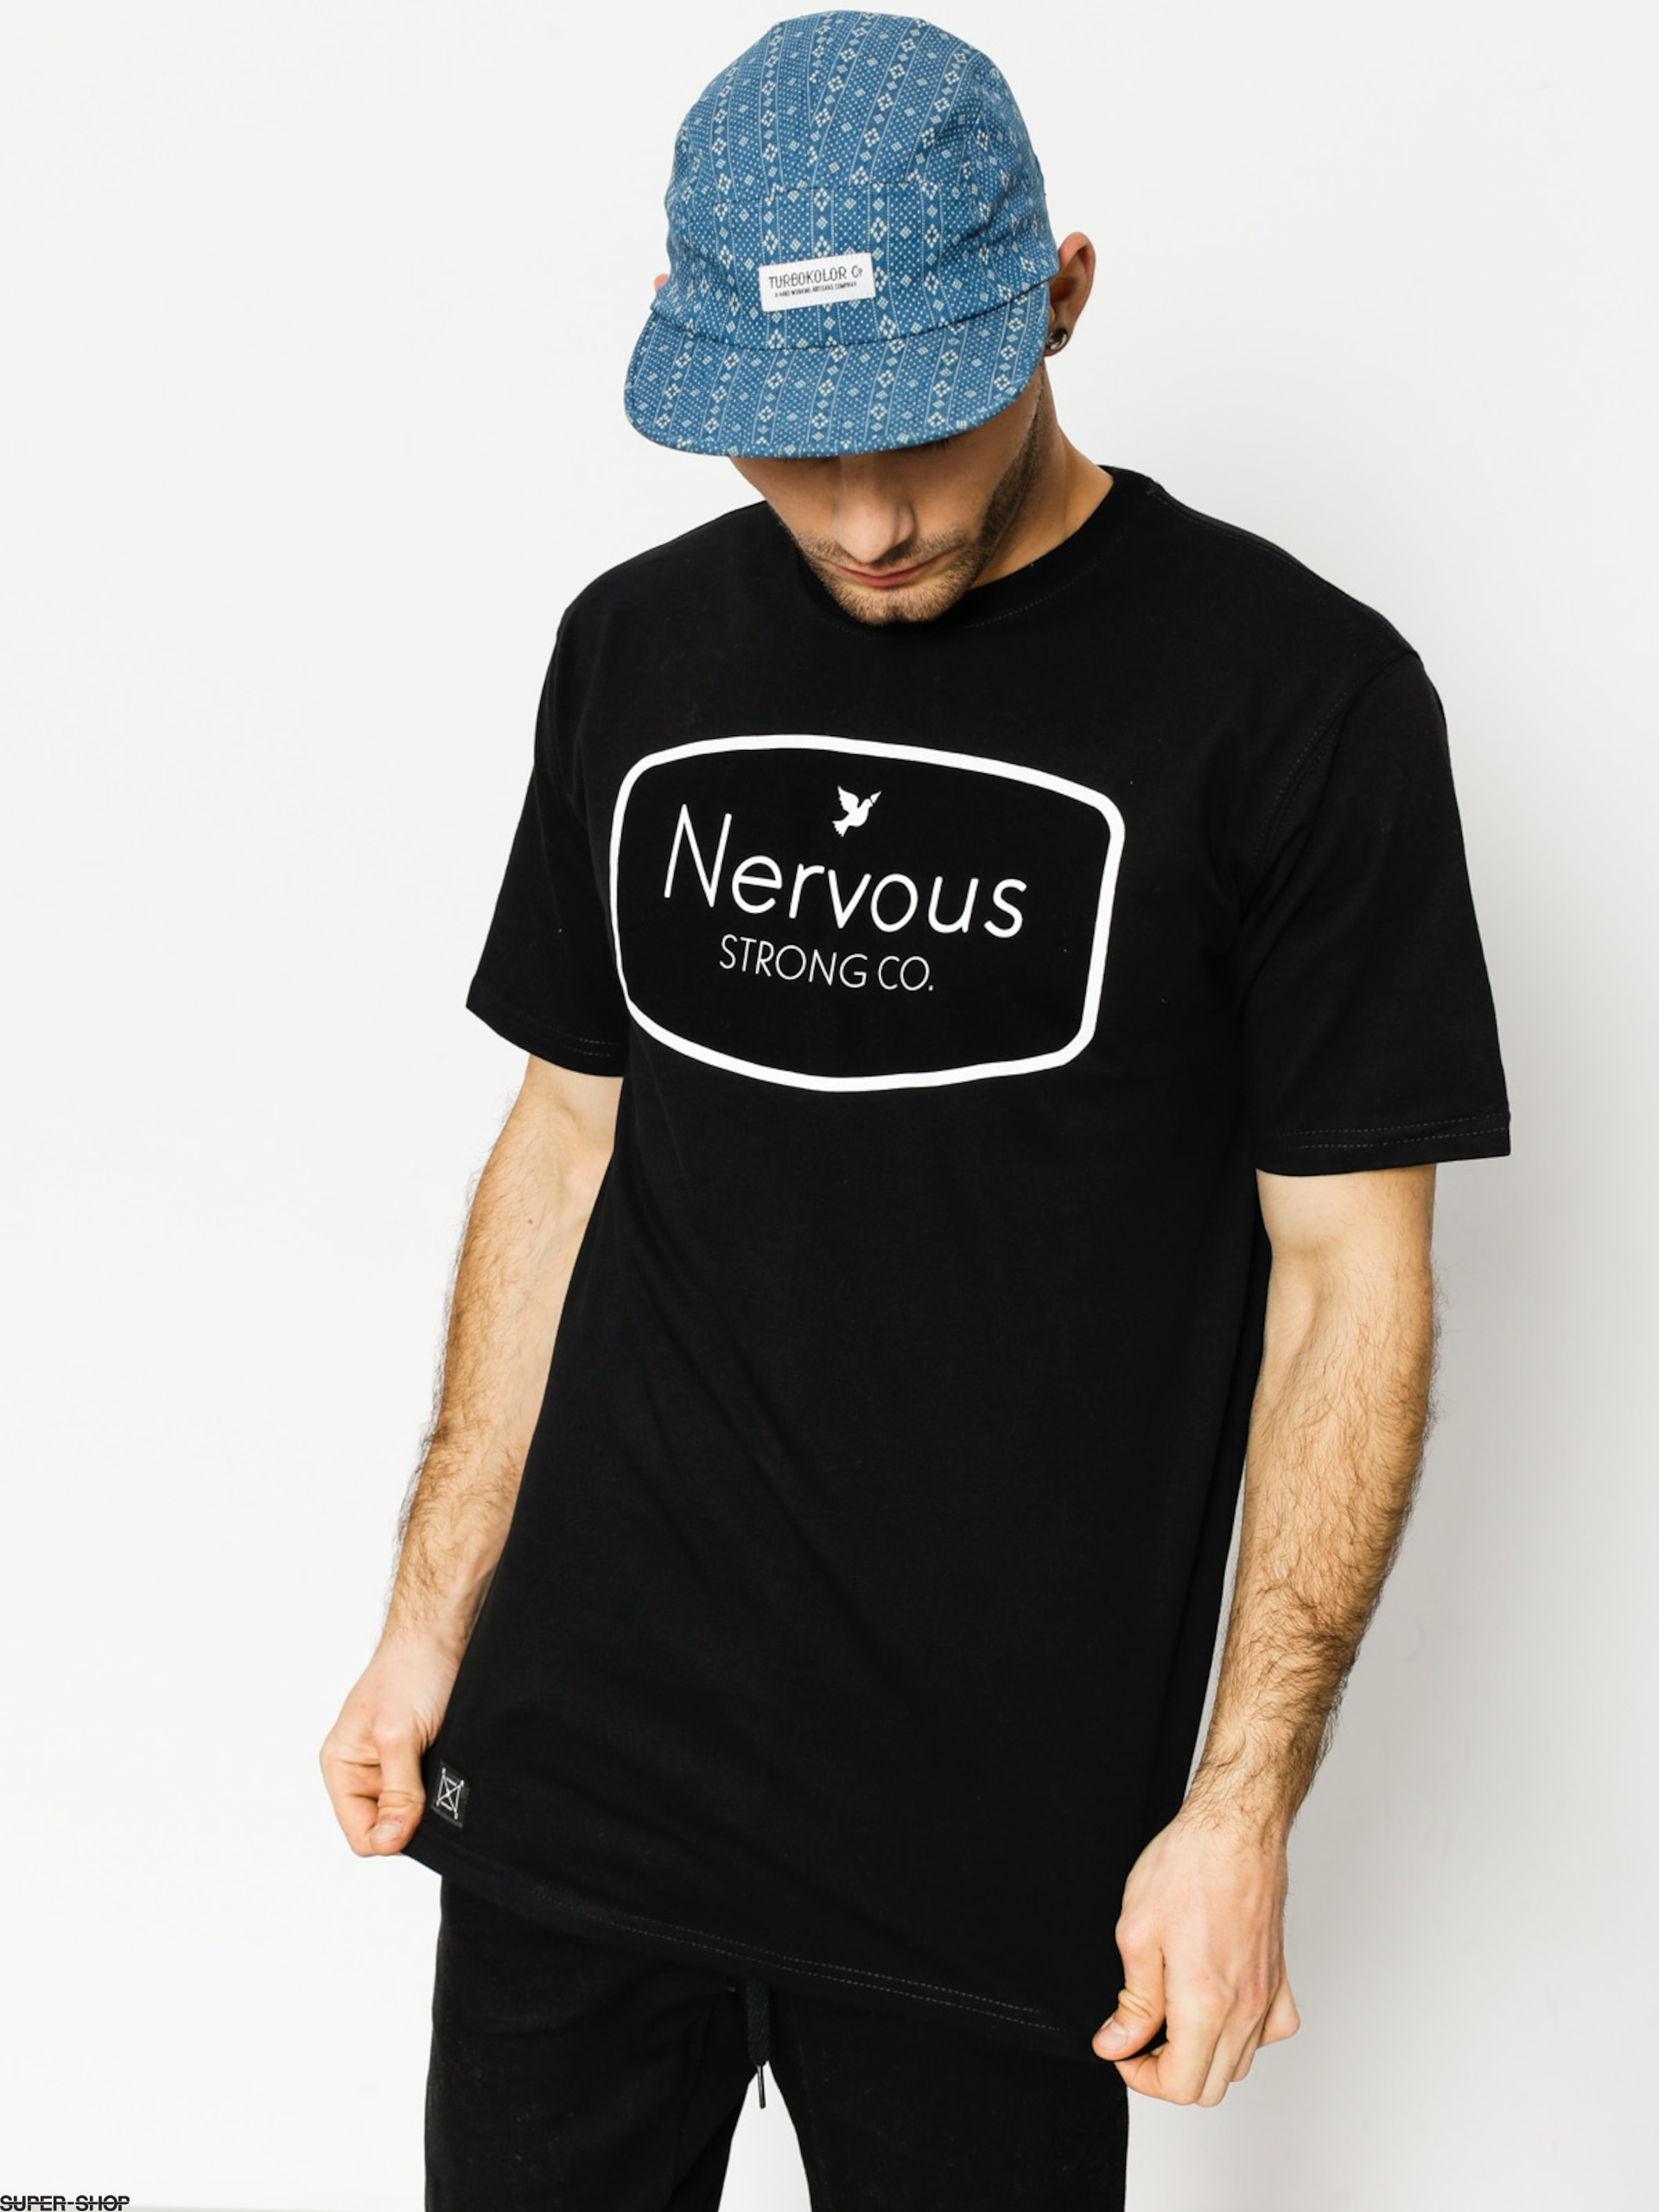 Nervous T-shirt Ad